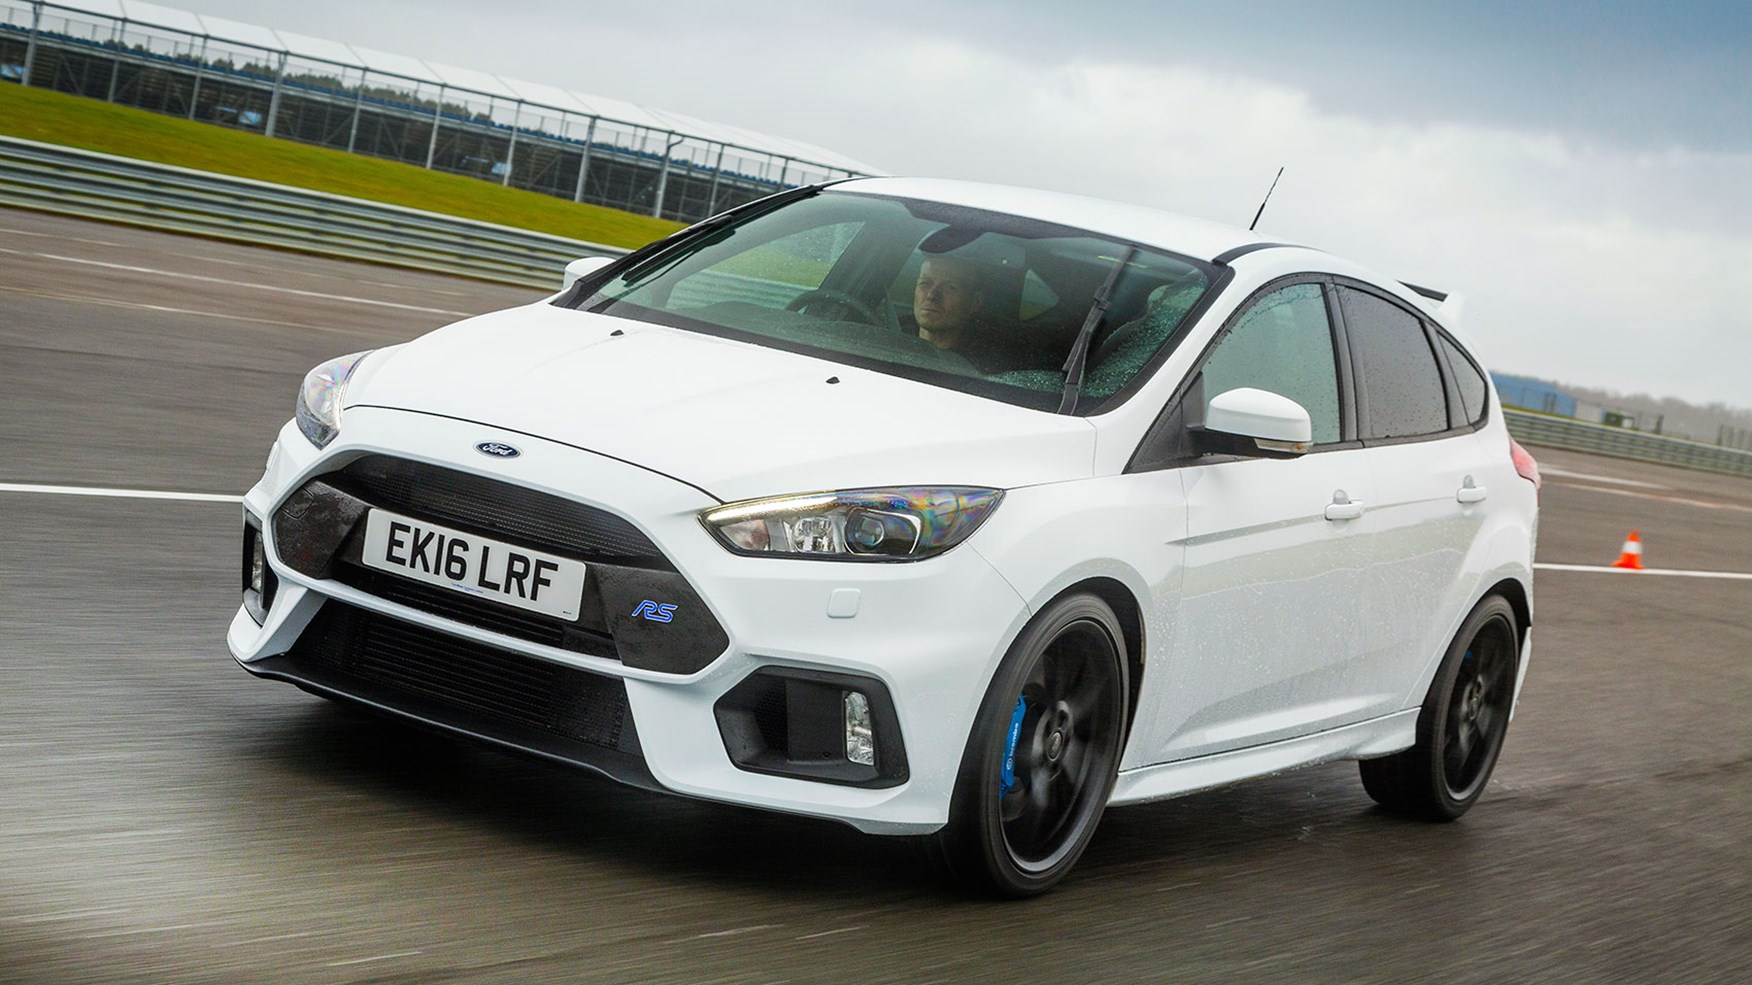 0 Down Lease Deals >> Ford Focus RS Mountune FPM375 (2017) review | CAR Magazine